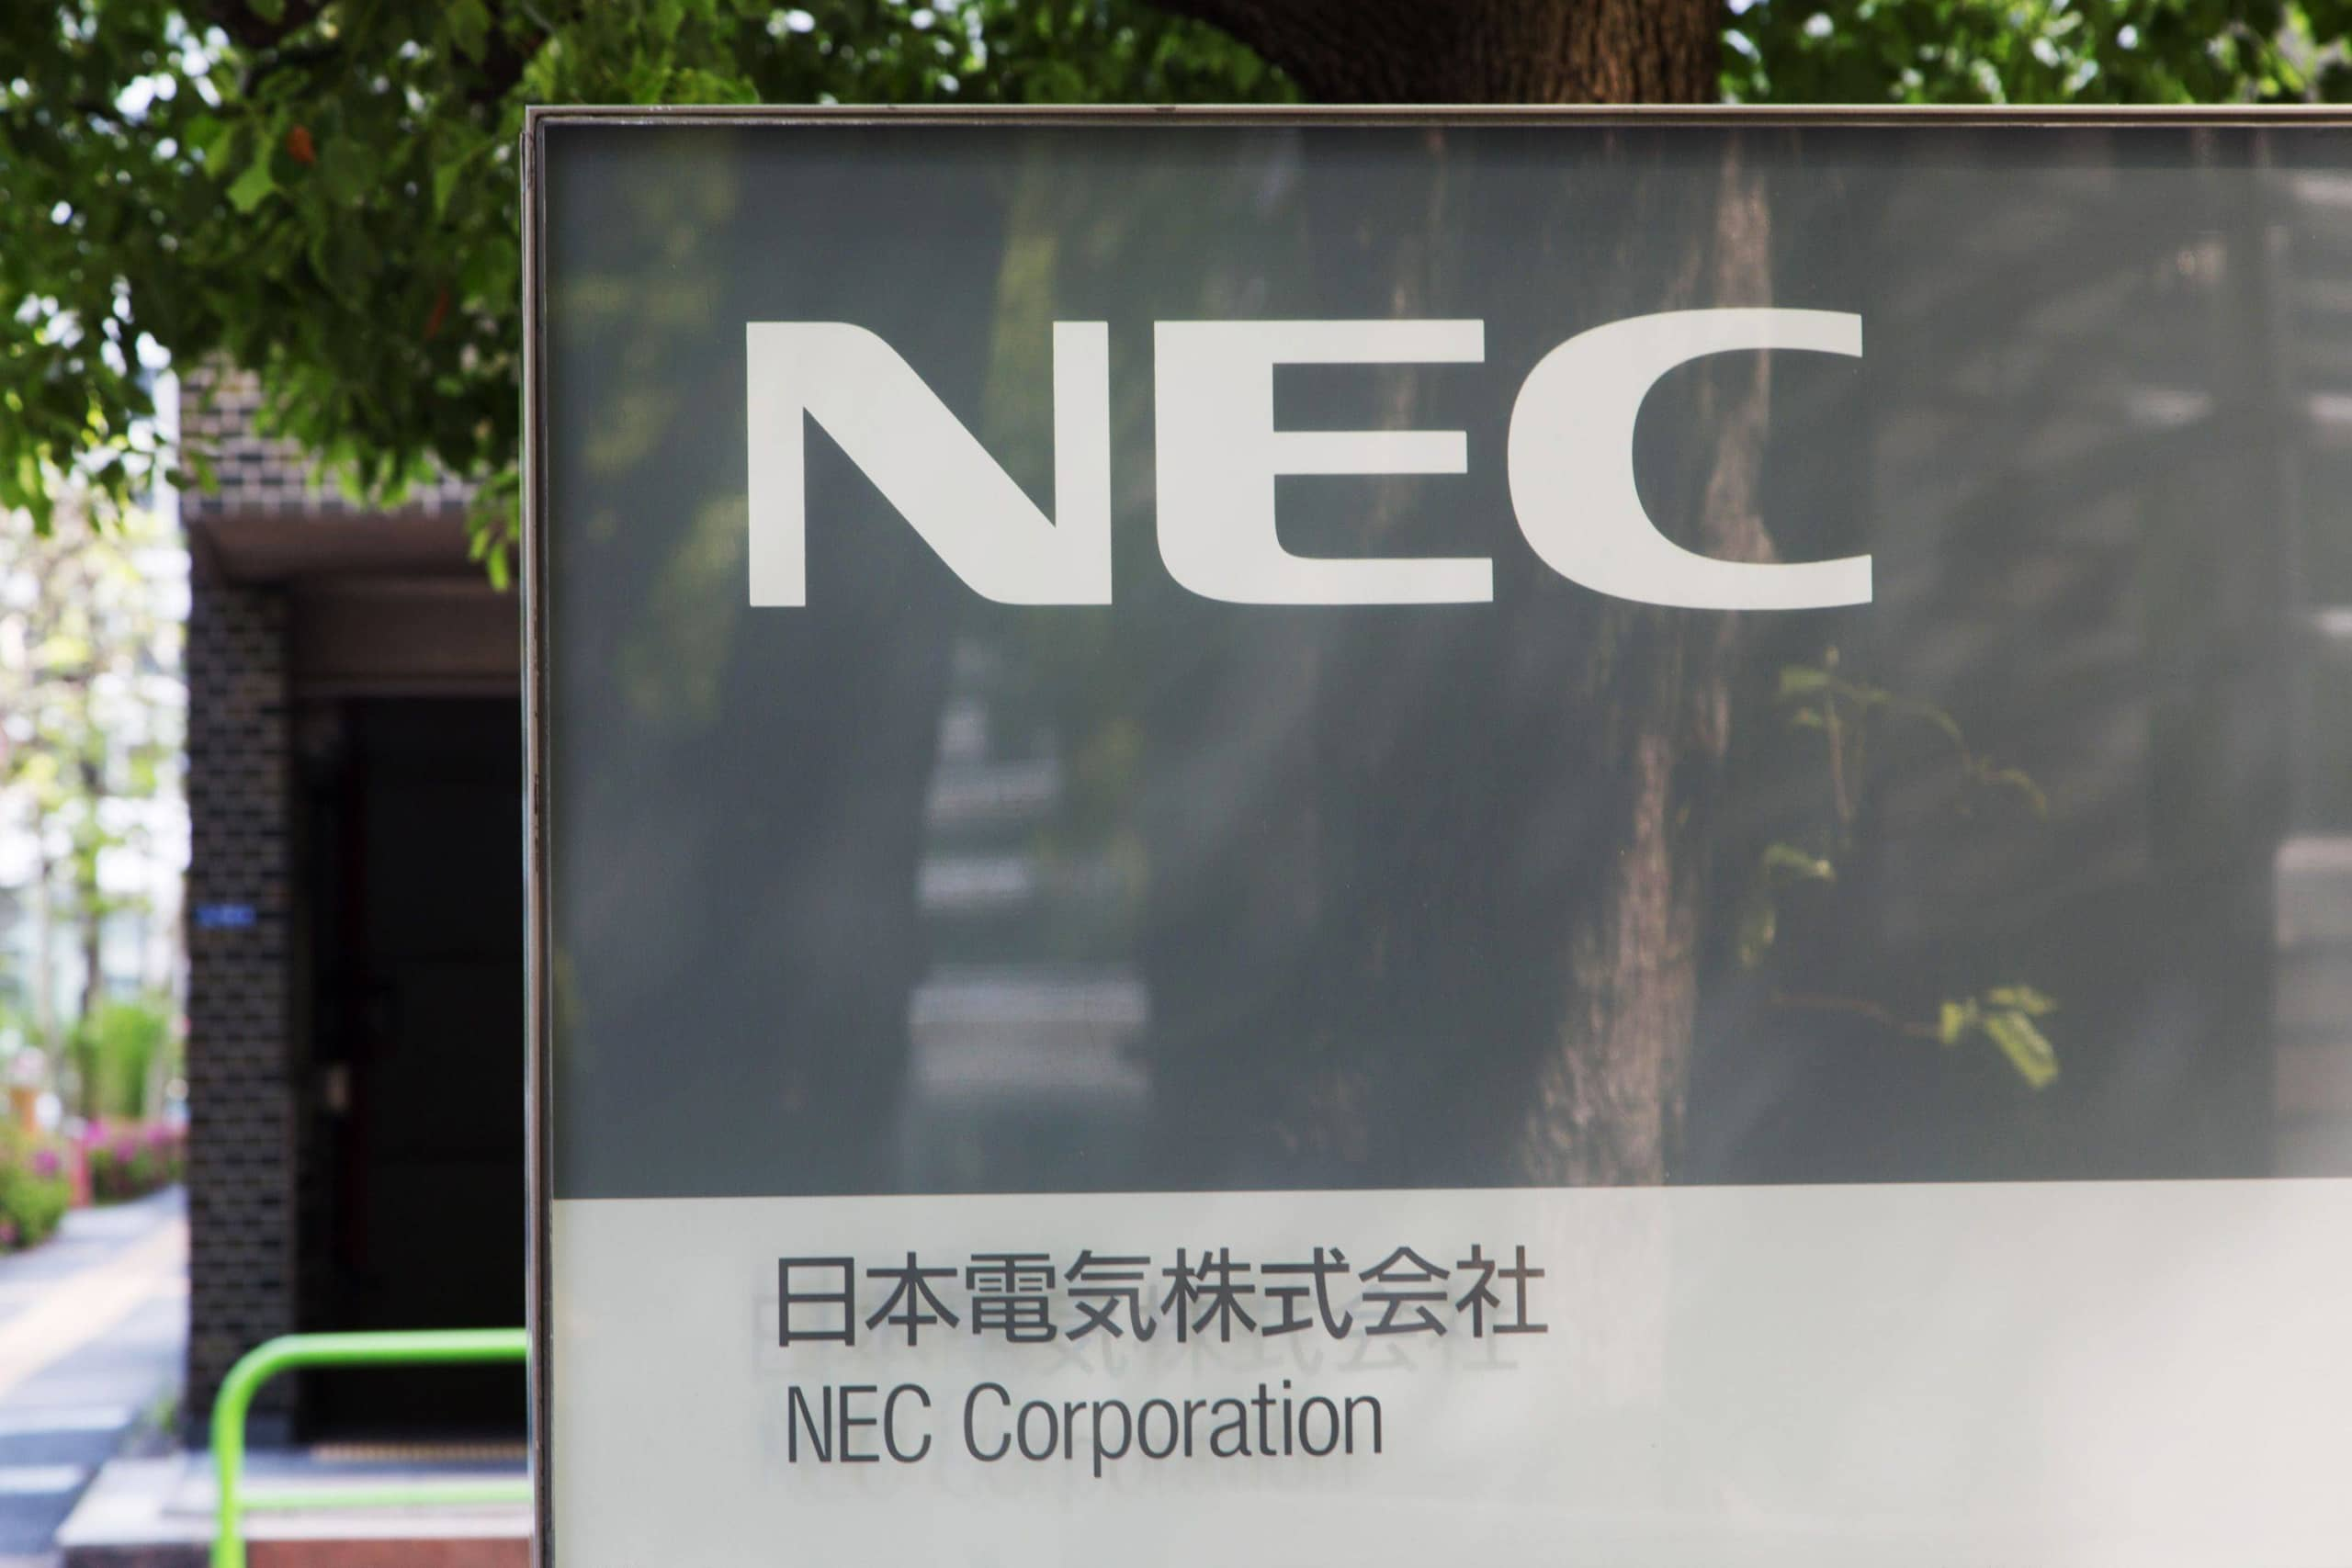 Major electronics maker NEC Corp. is closing down its global battery unit, NEC Energy Solutions Inc., citing the business impacts of COVID-19. | BLOOMBERG